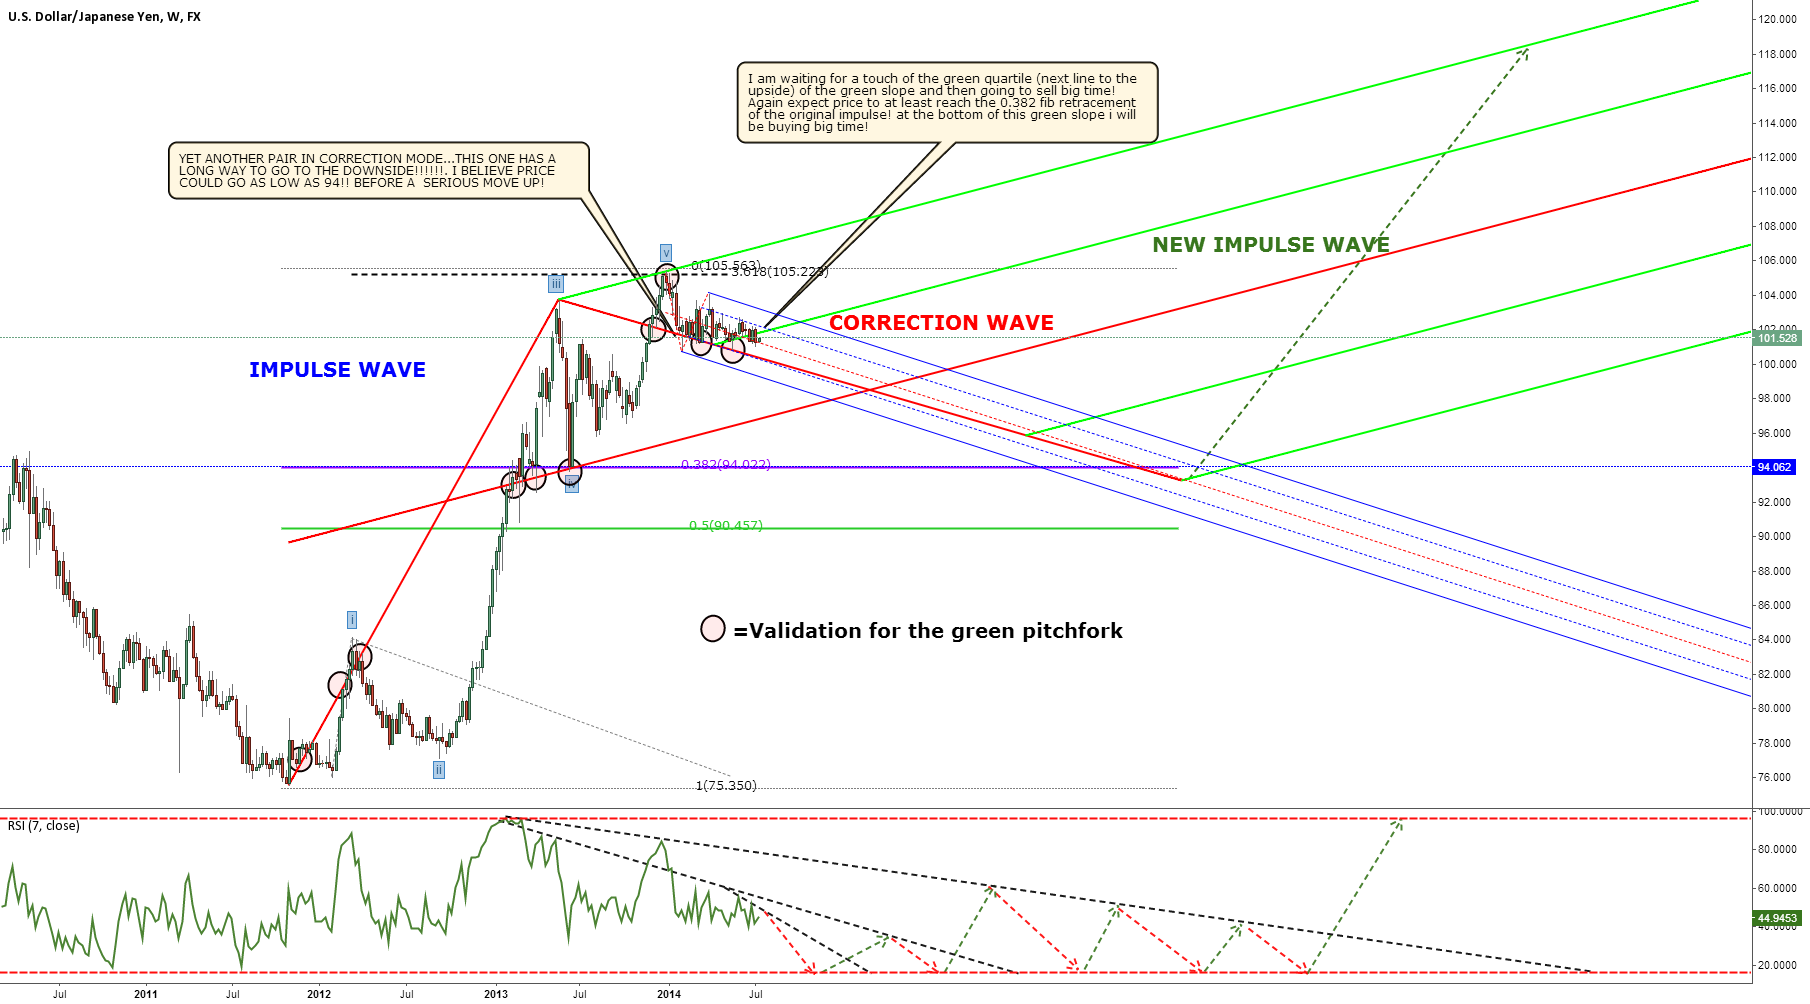 USDJPY LONG TERM FORECAST